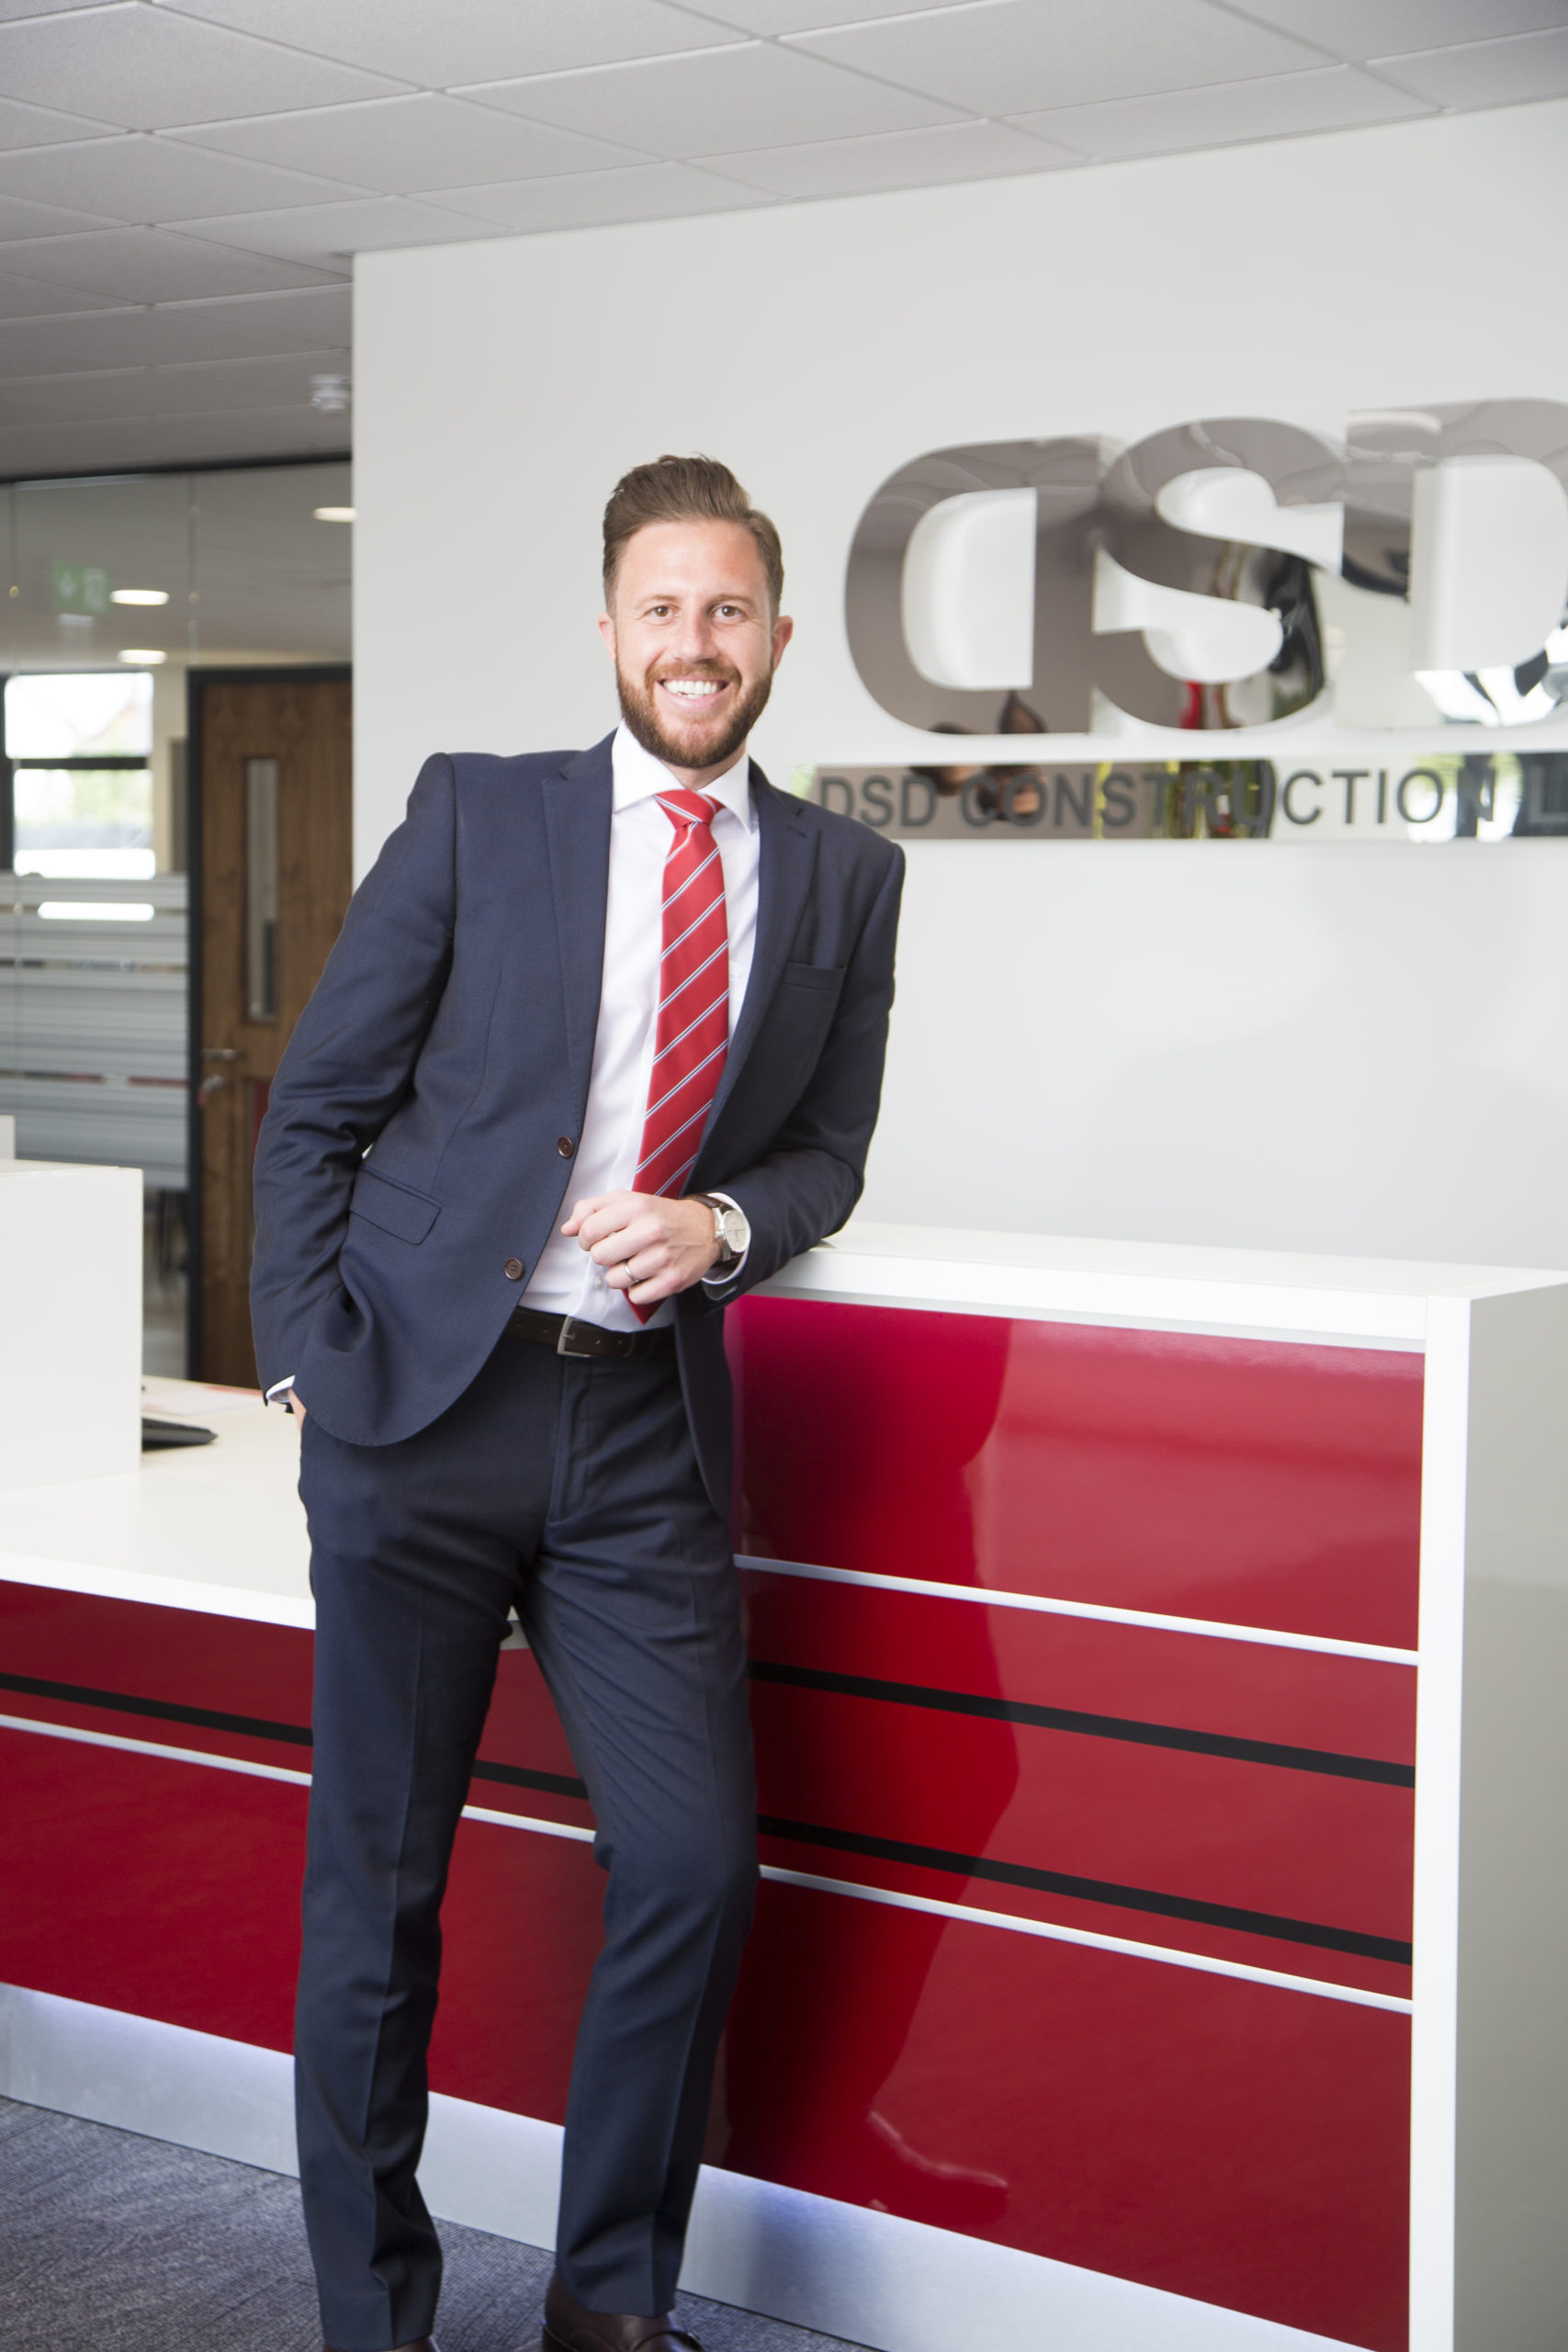 Commercial manger in a suit leaning on reception desk